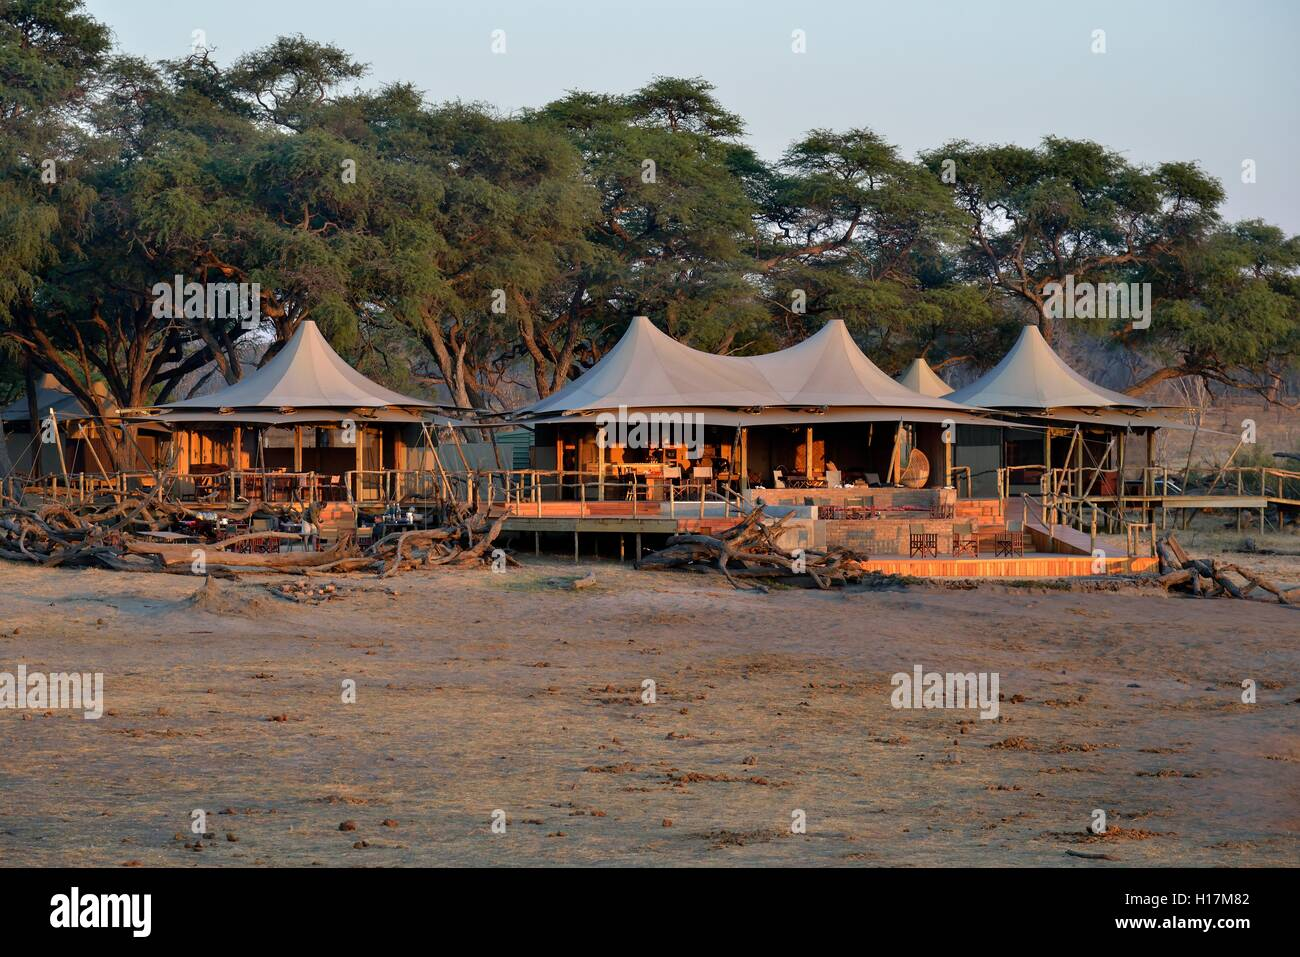 Somalisa Camp in the evening light, Hwange National Park, Matabeleland North Province, Zimbabwe Stock Photo